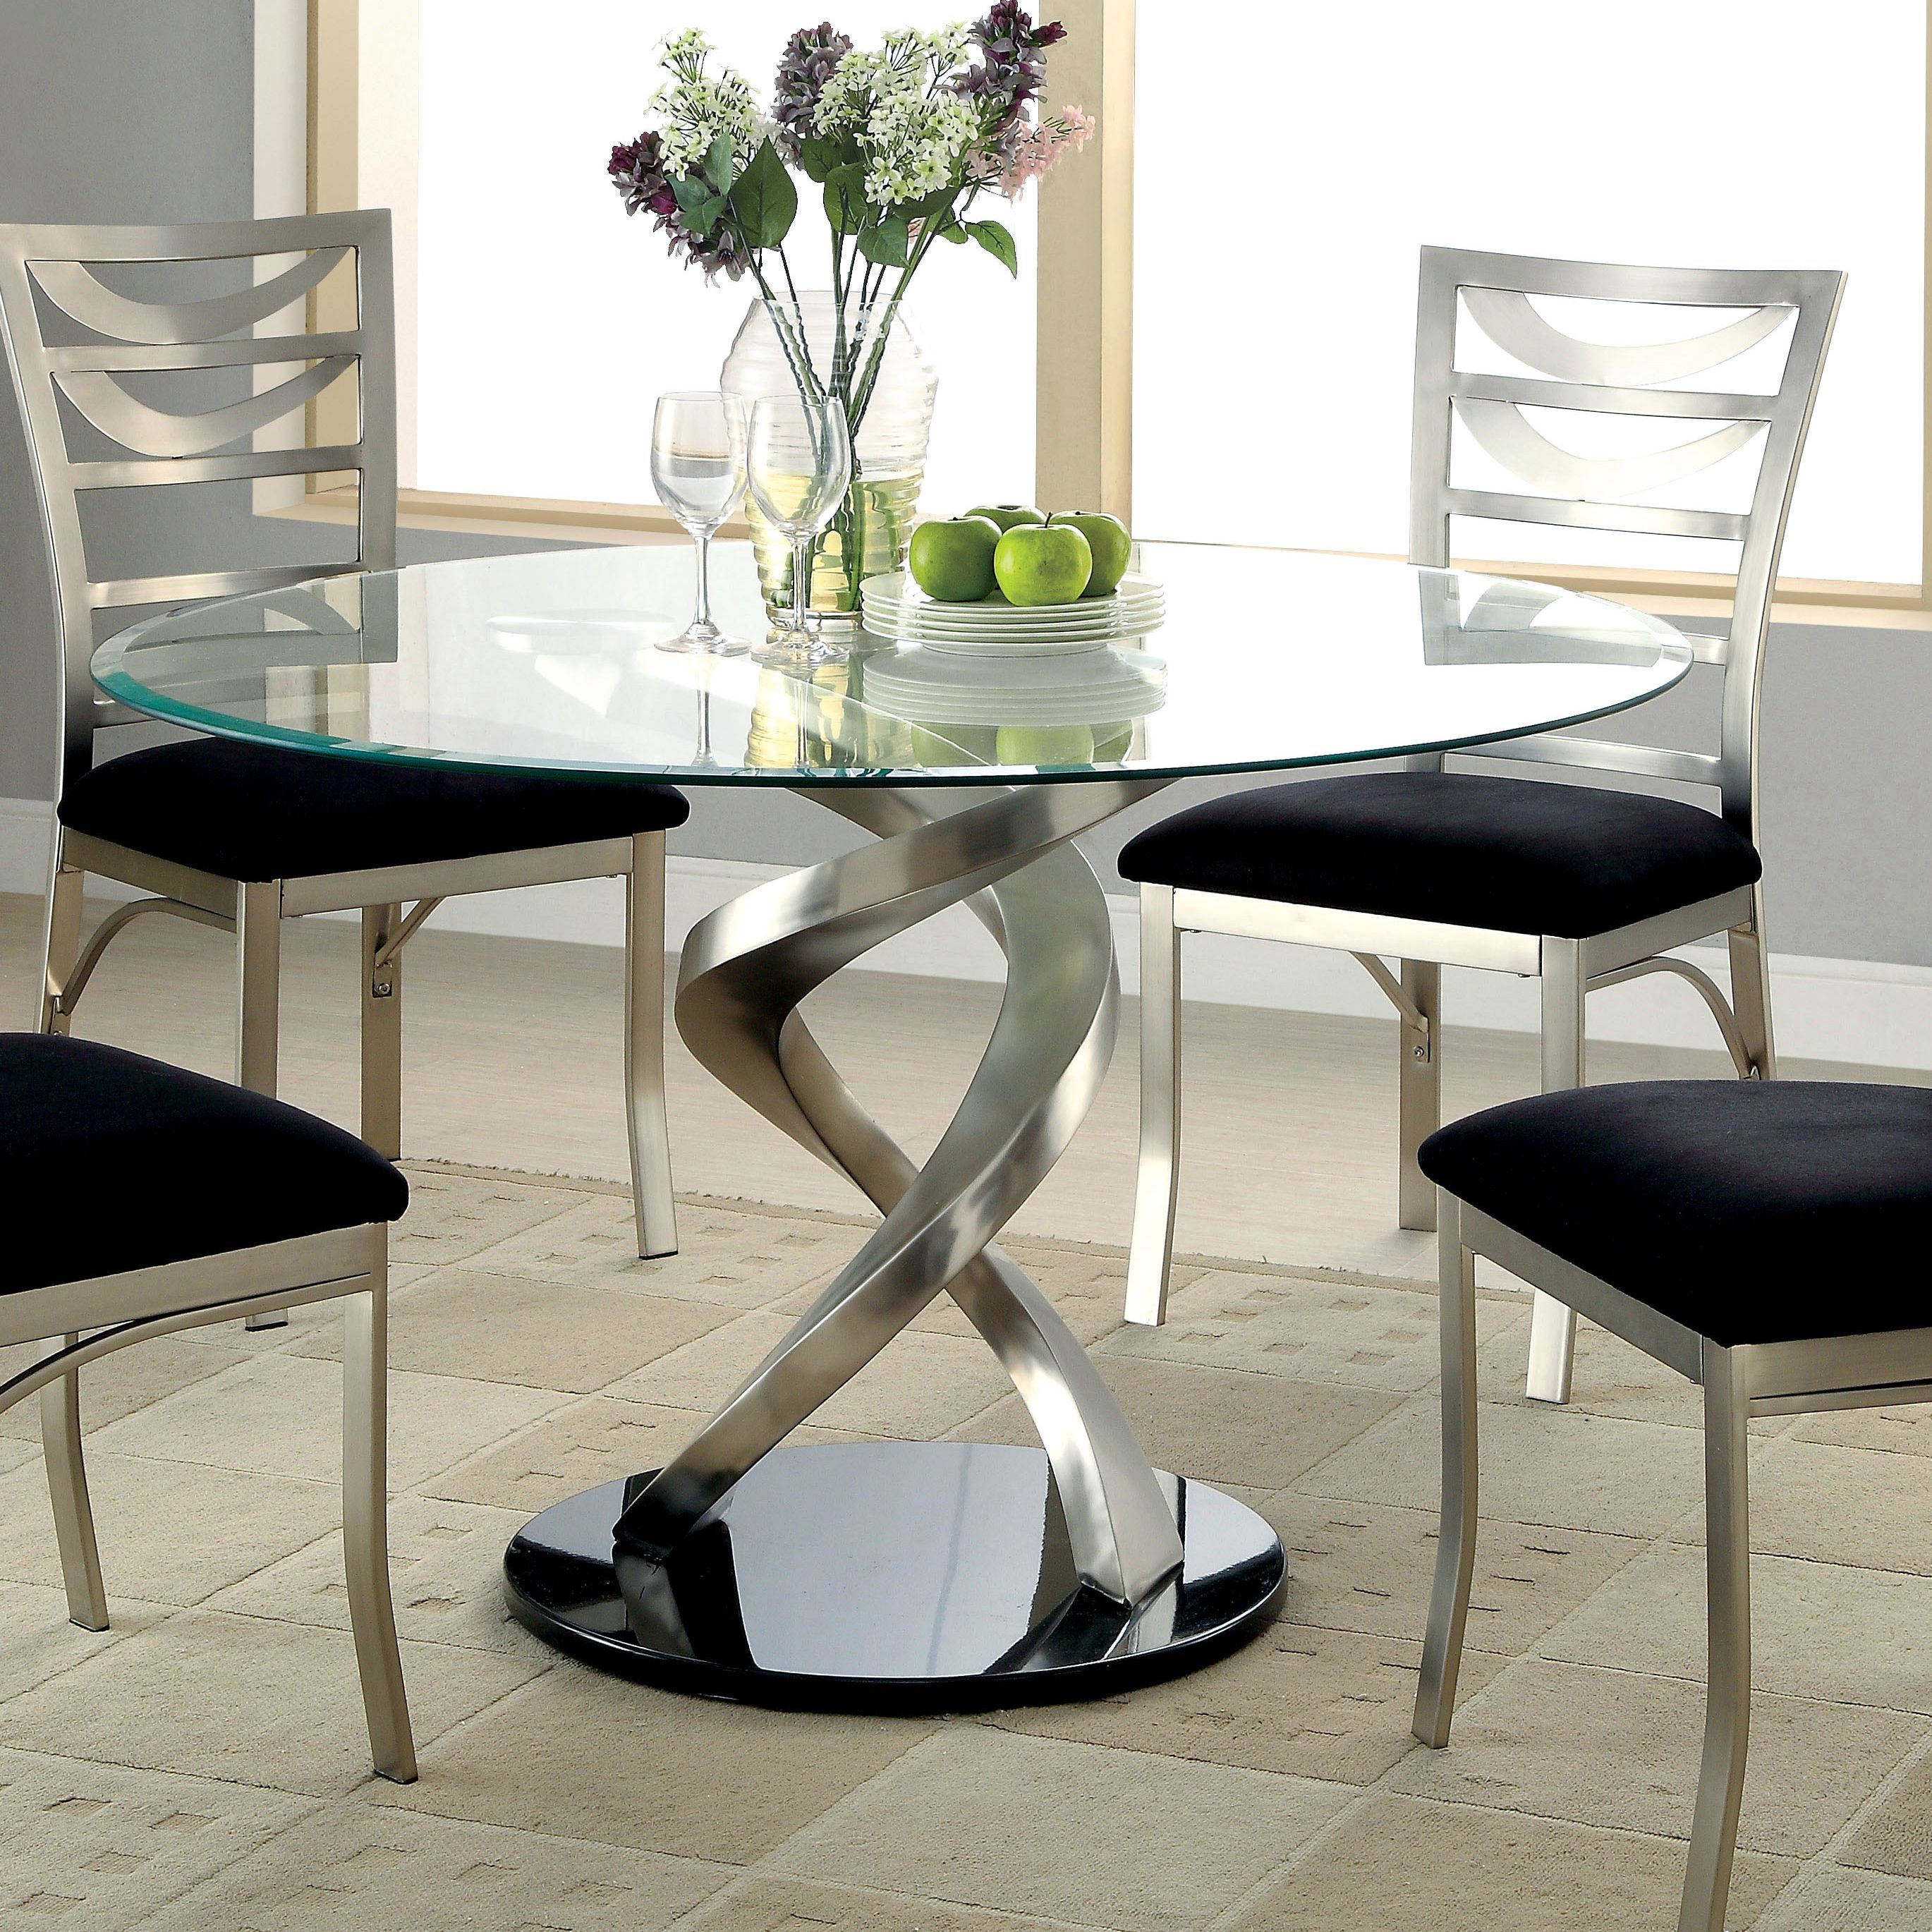 bring modern sculpture designs to the dining room with this . bring modern sculpture designs to the dining room with this elegant andswirling round table